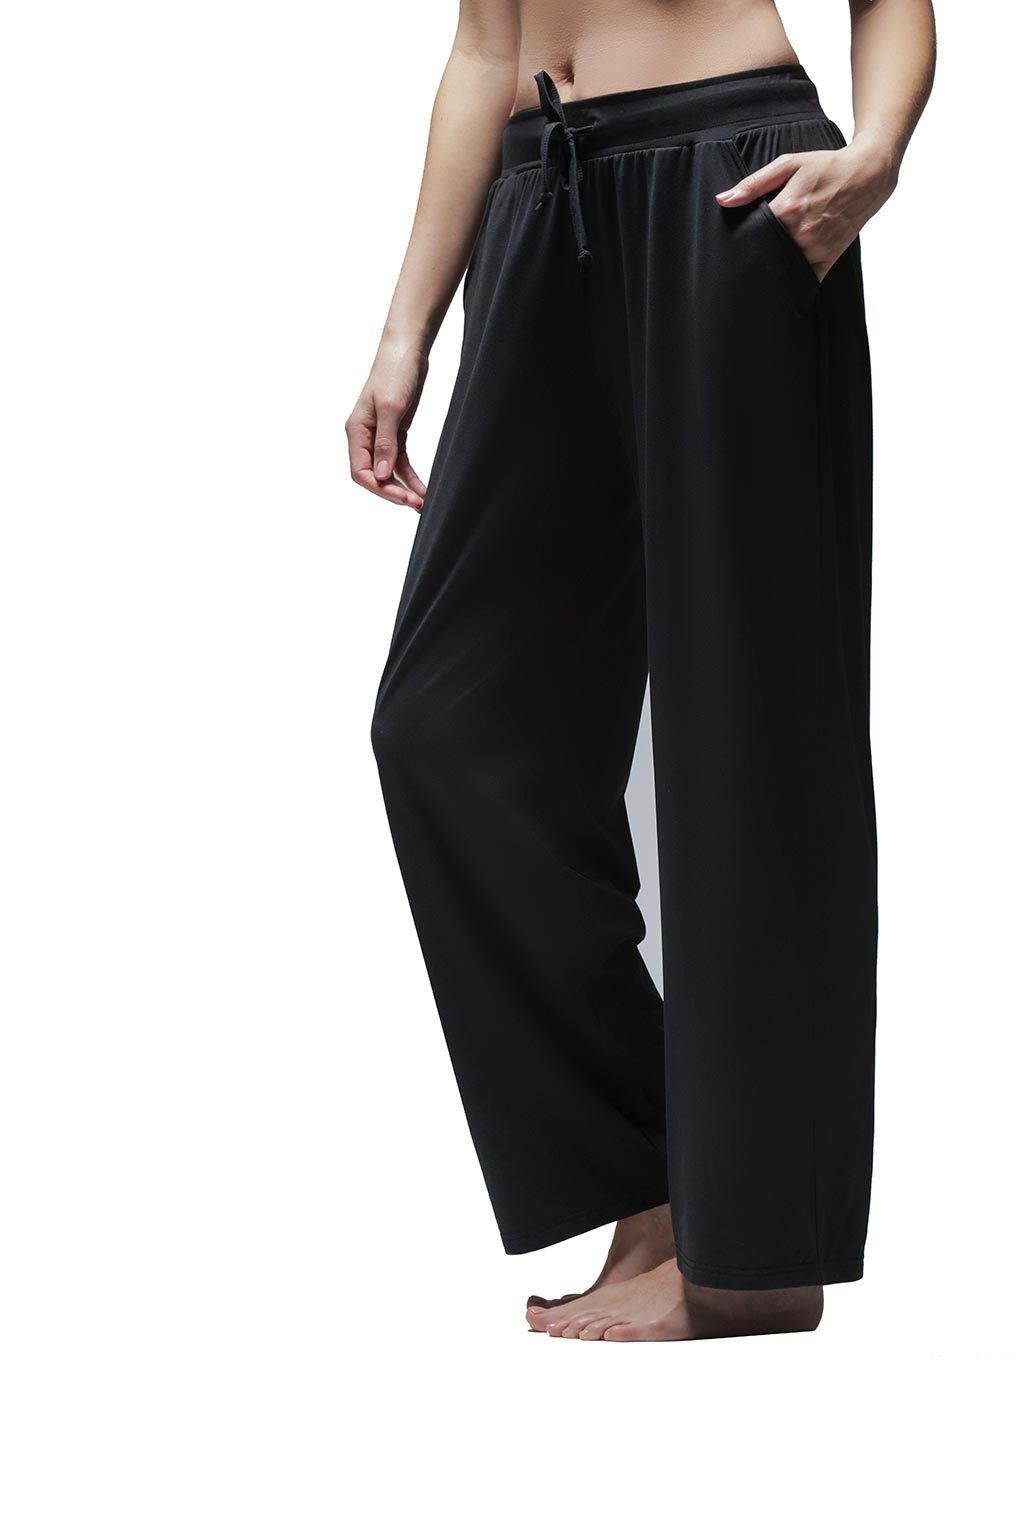 Women's Wide-Leg Pull On Pant - Black